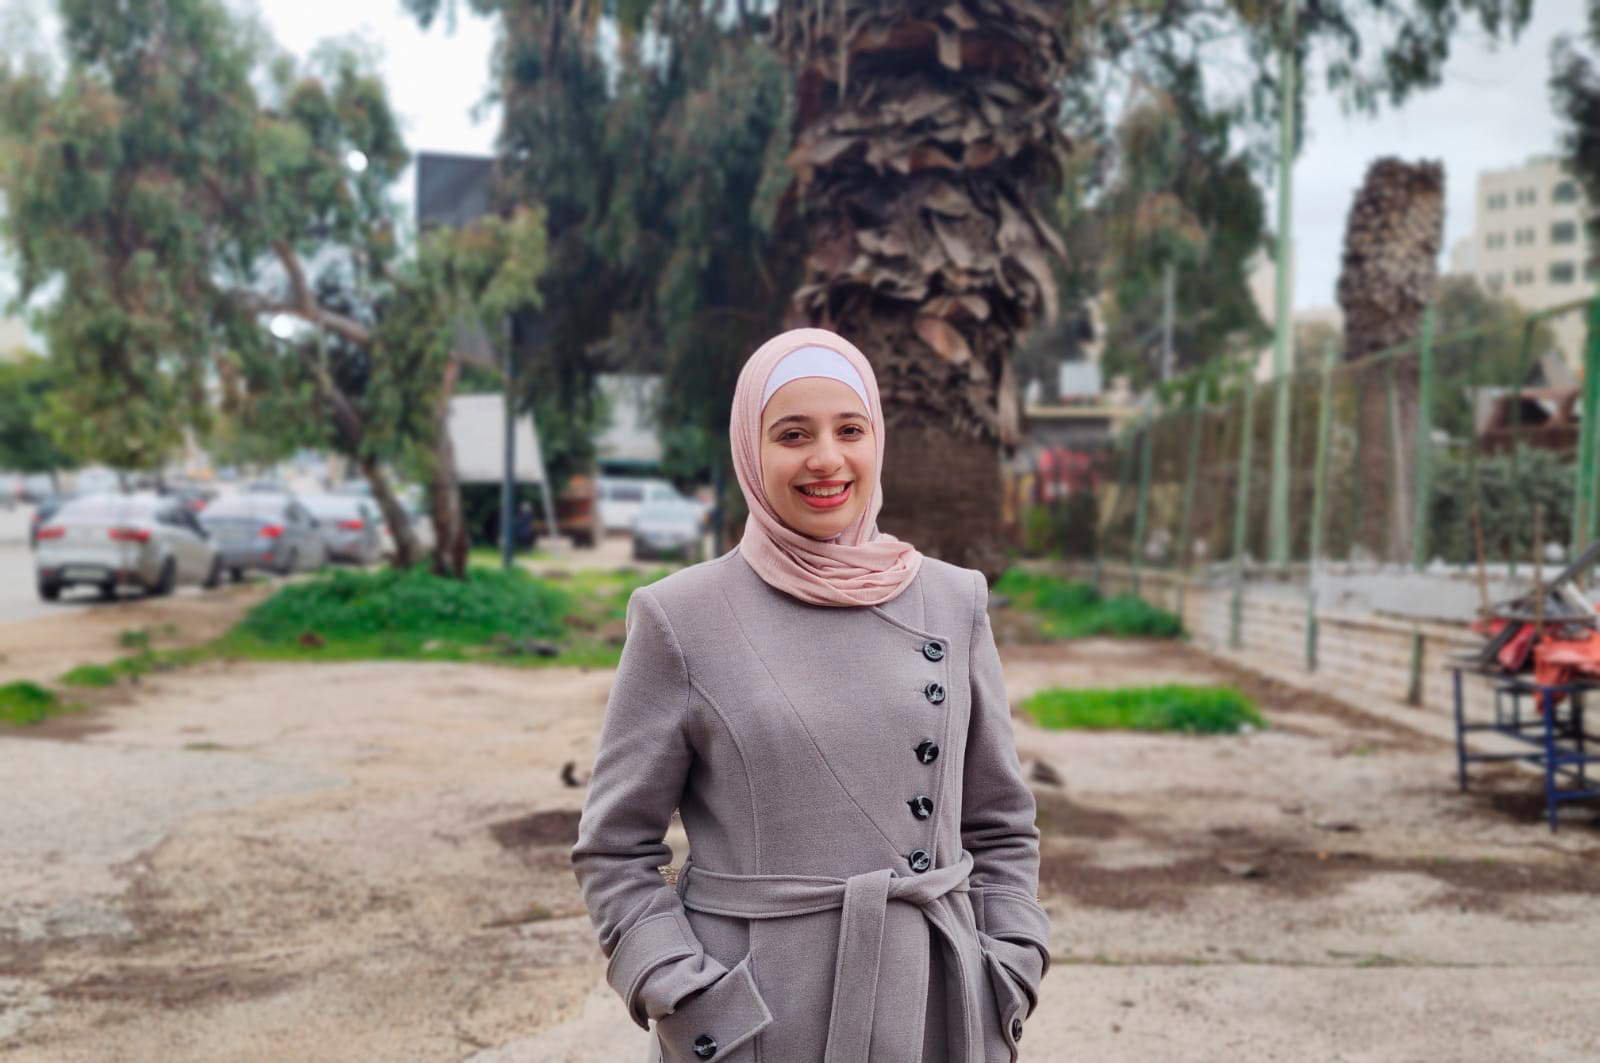 A woman in a grey coat, pink hijab, smiling standing outside in front a a tree.